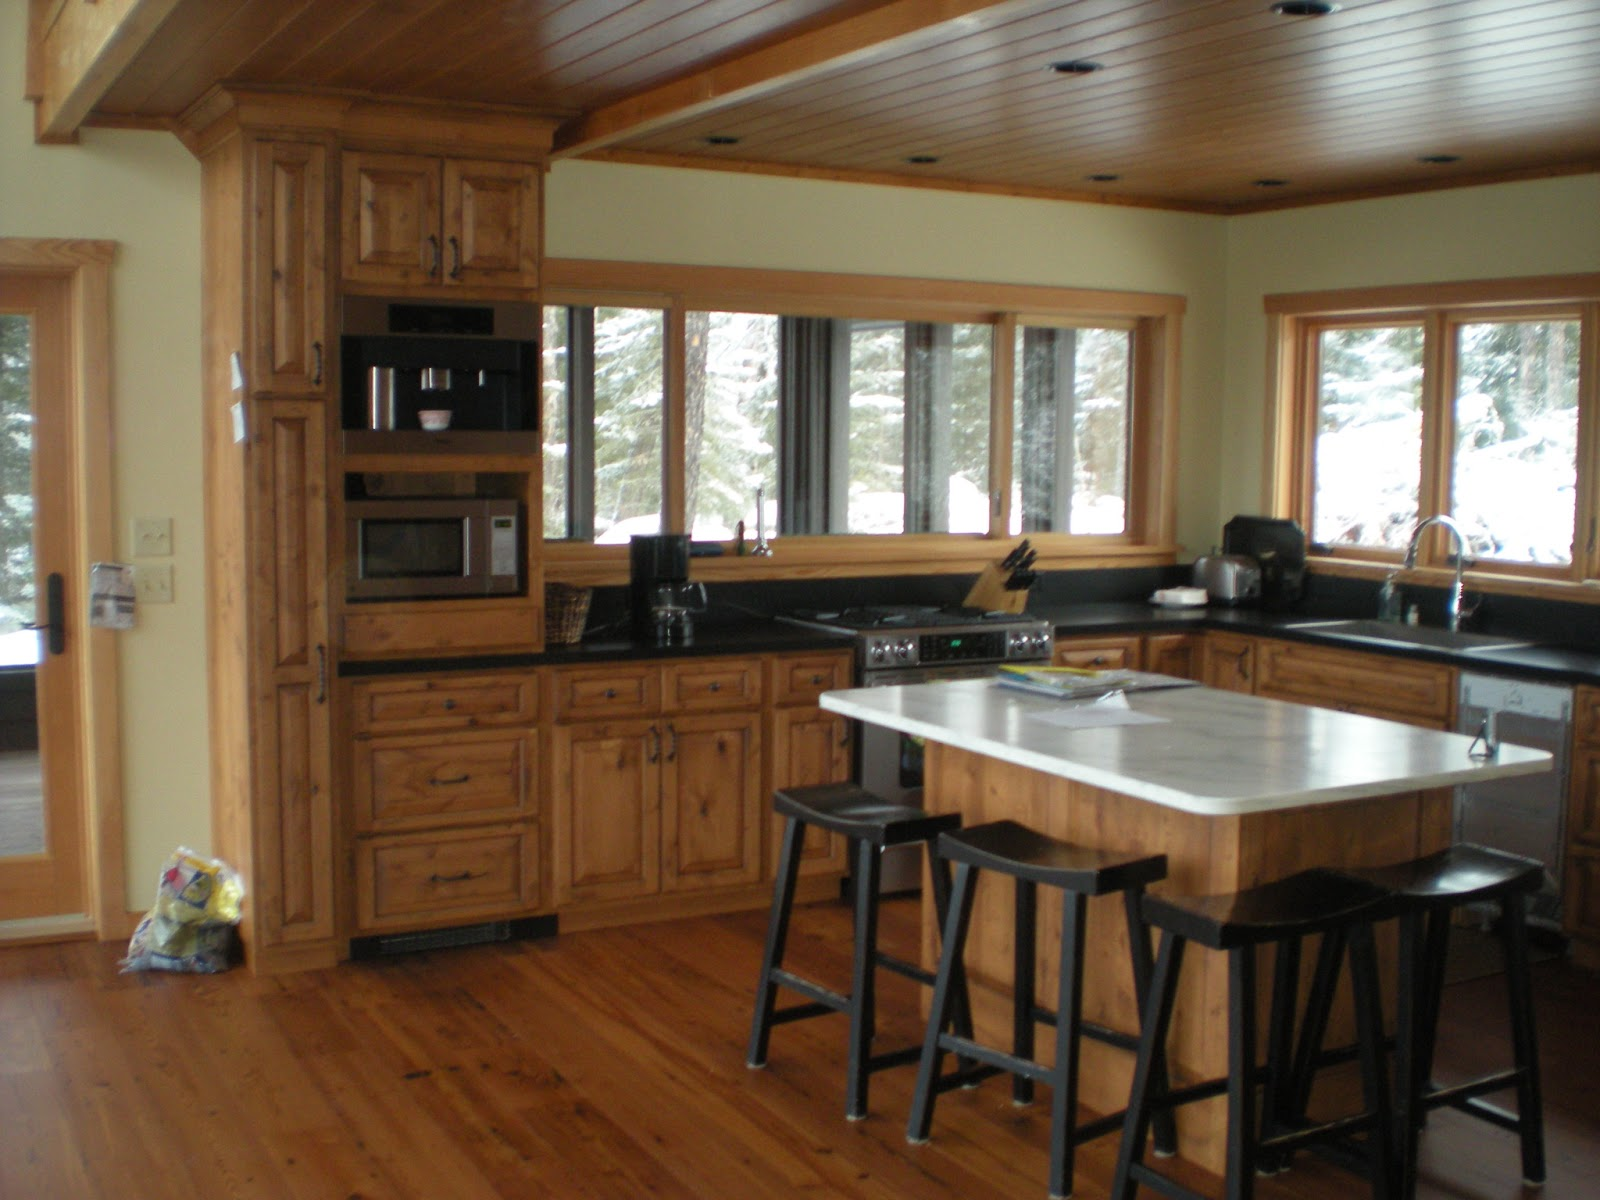 Knotty Pine Kitchen Cabinets with Countertops